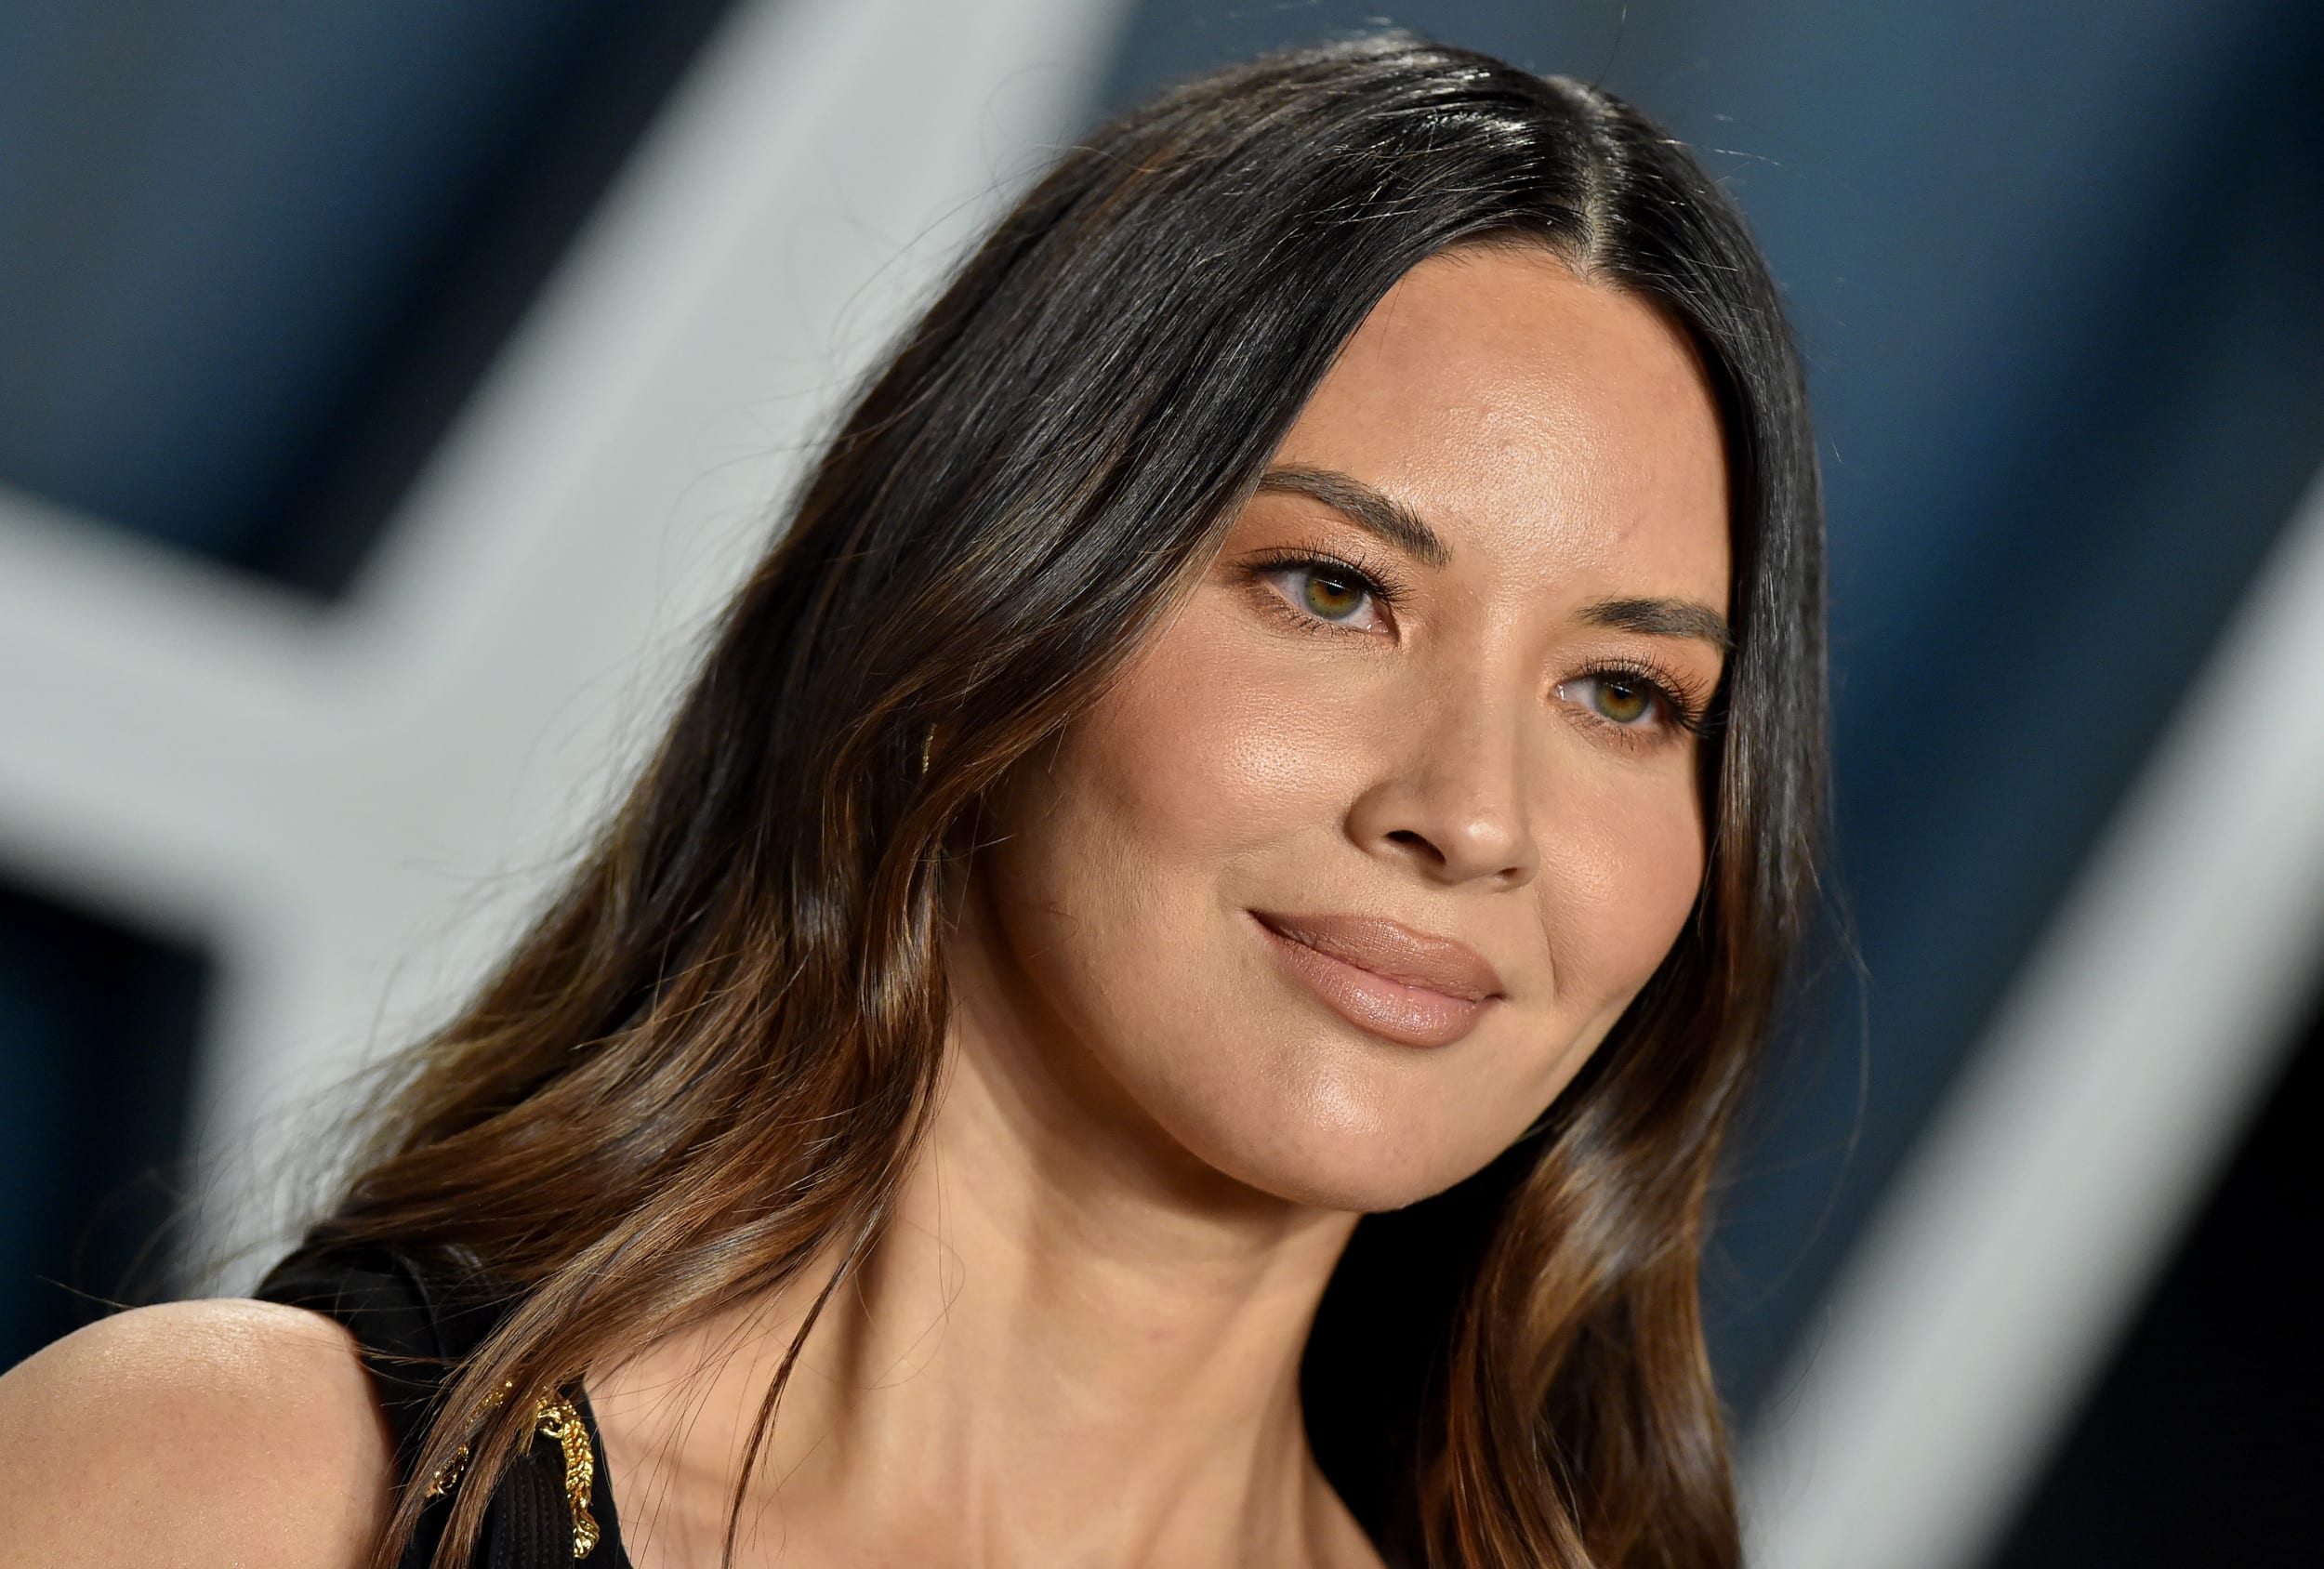 Olivia Munn who is she dating?